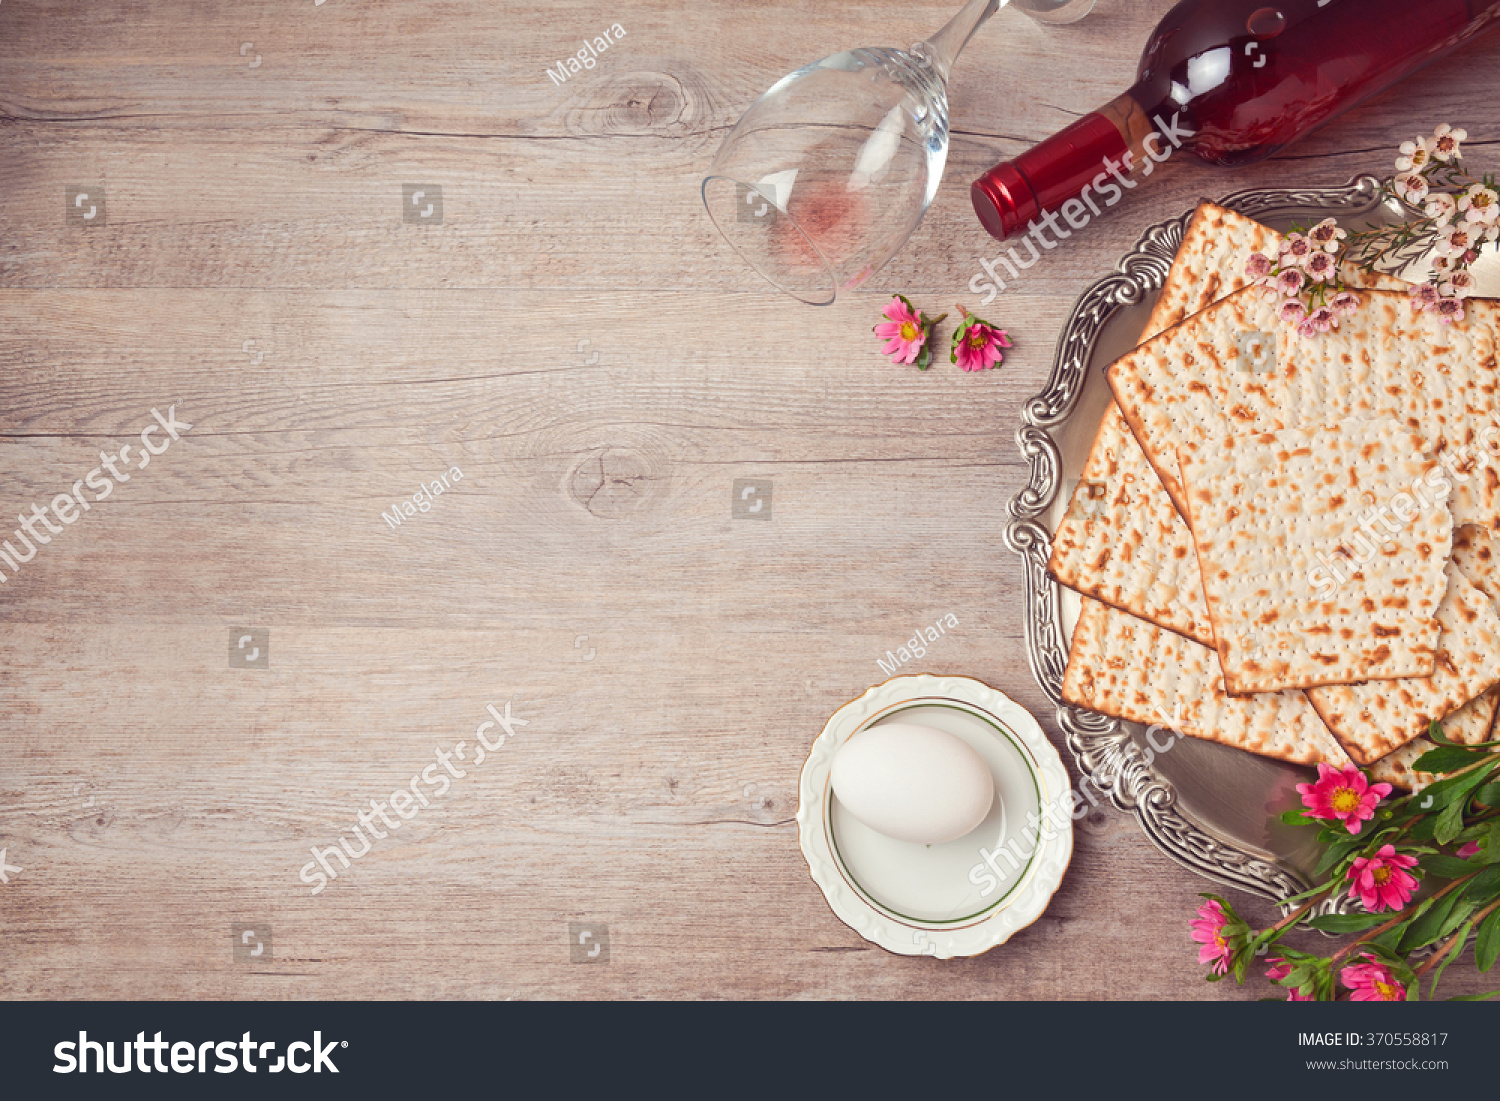 Passover background matzah seder plate wine stock photo 370558817 passover background with matzah seder plate and wine view from above buycottarizona